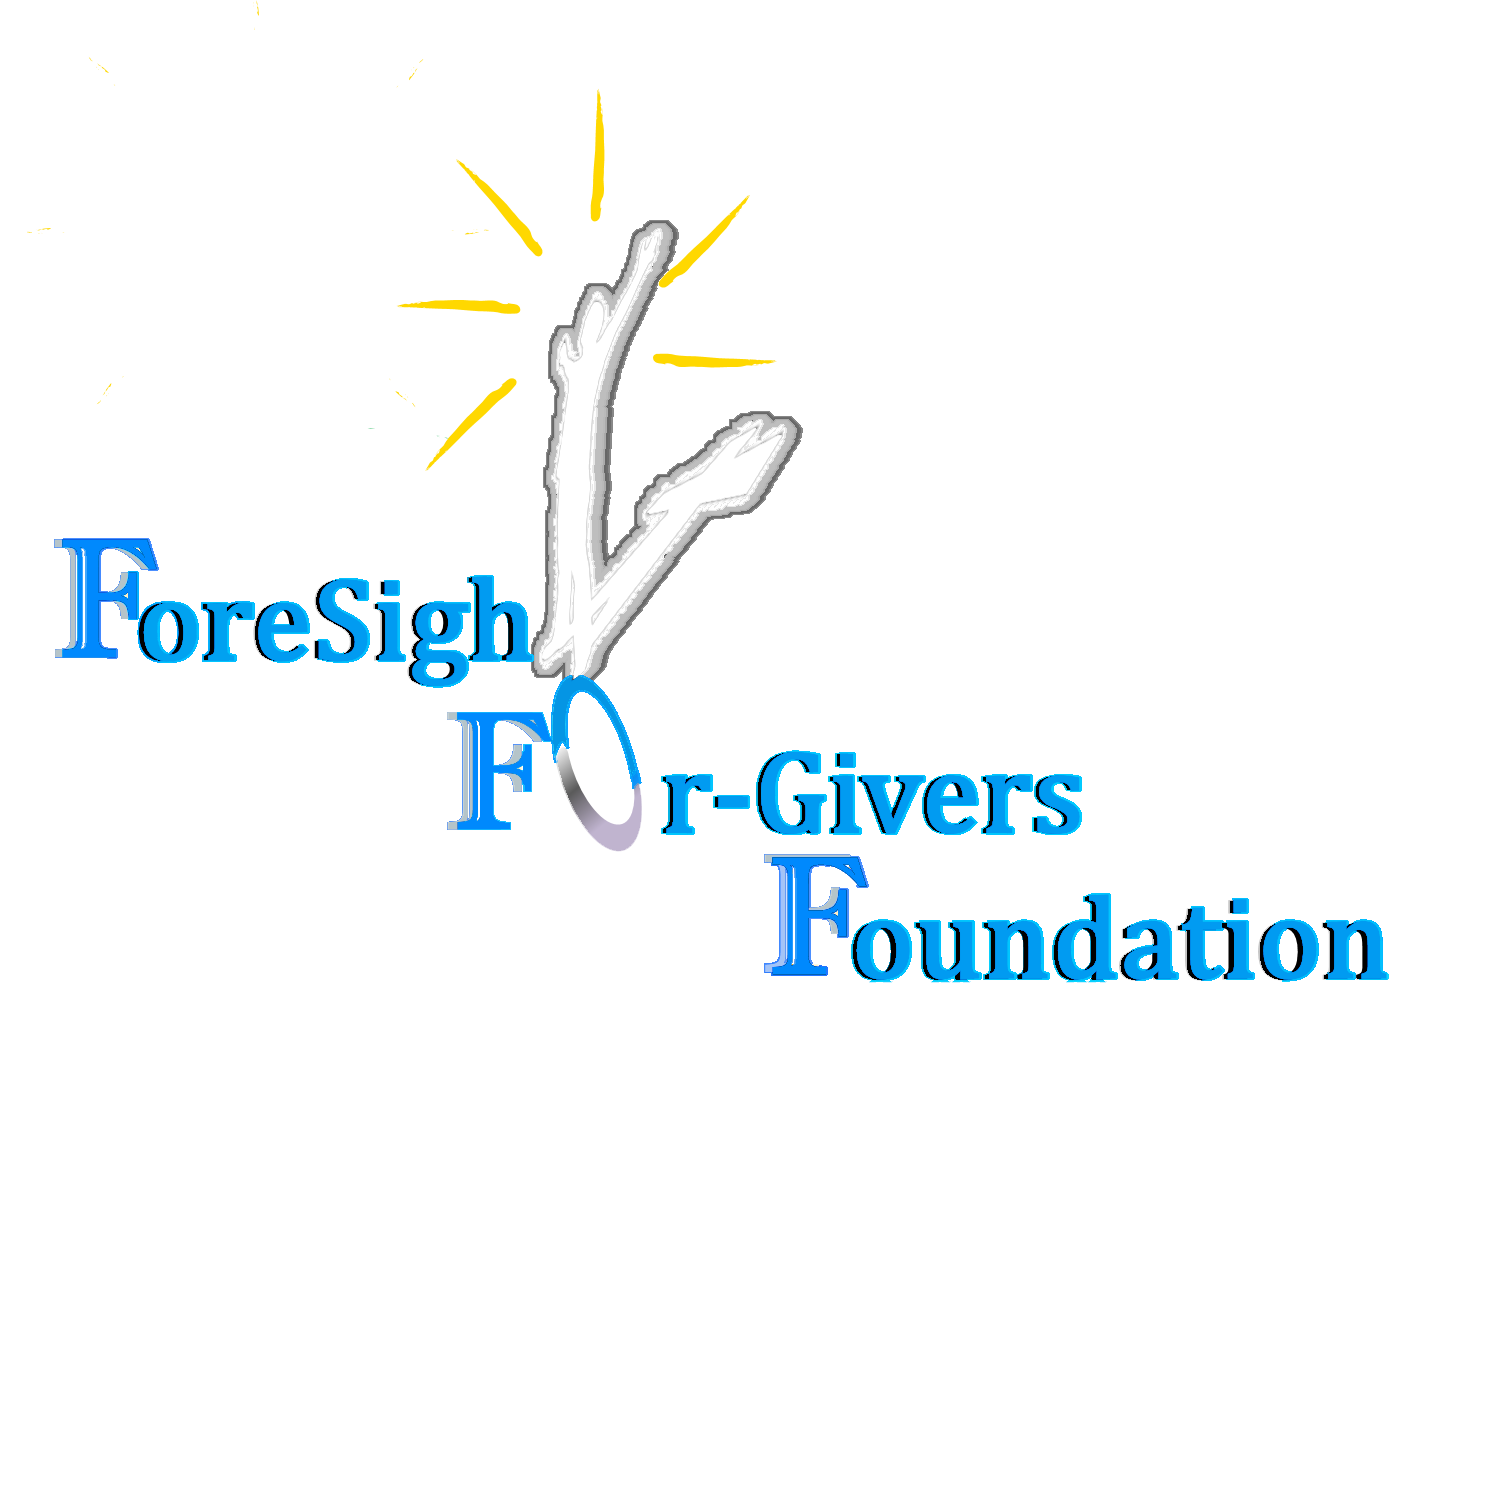 Foresight For-Givers Foundation, Inc.